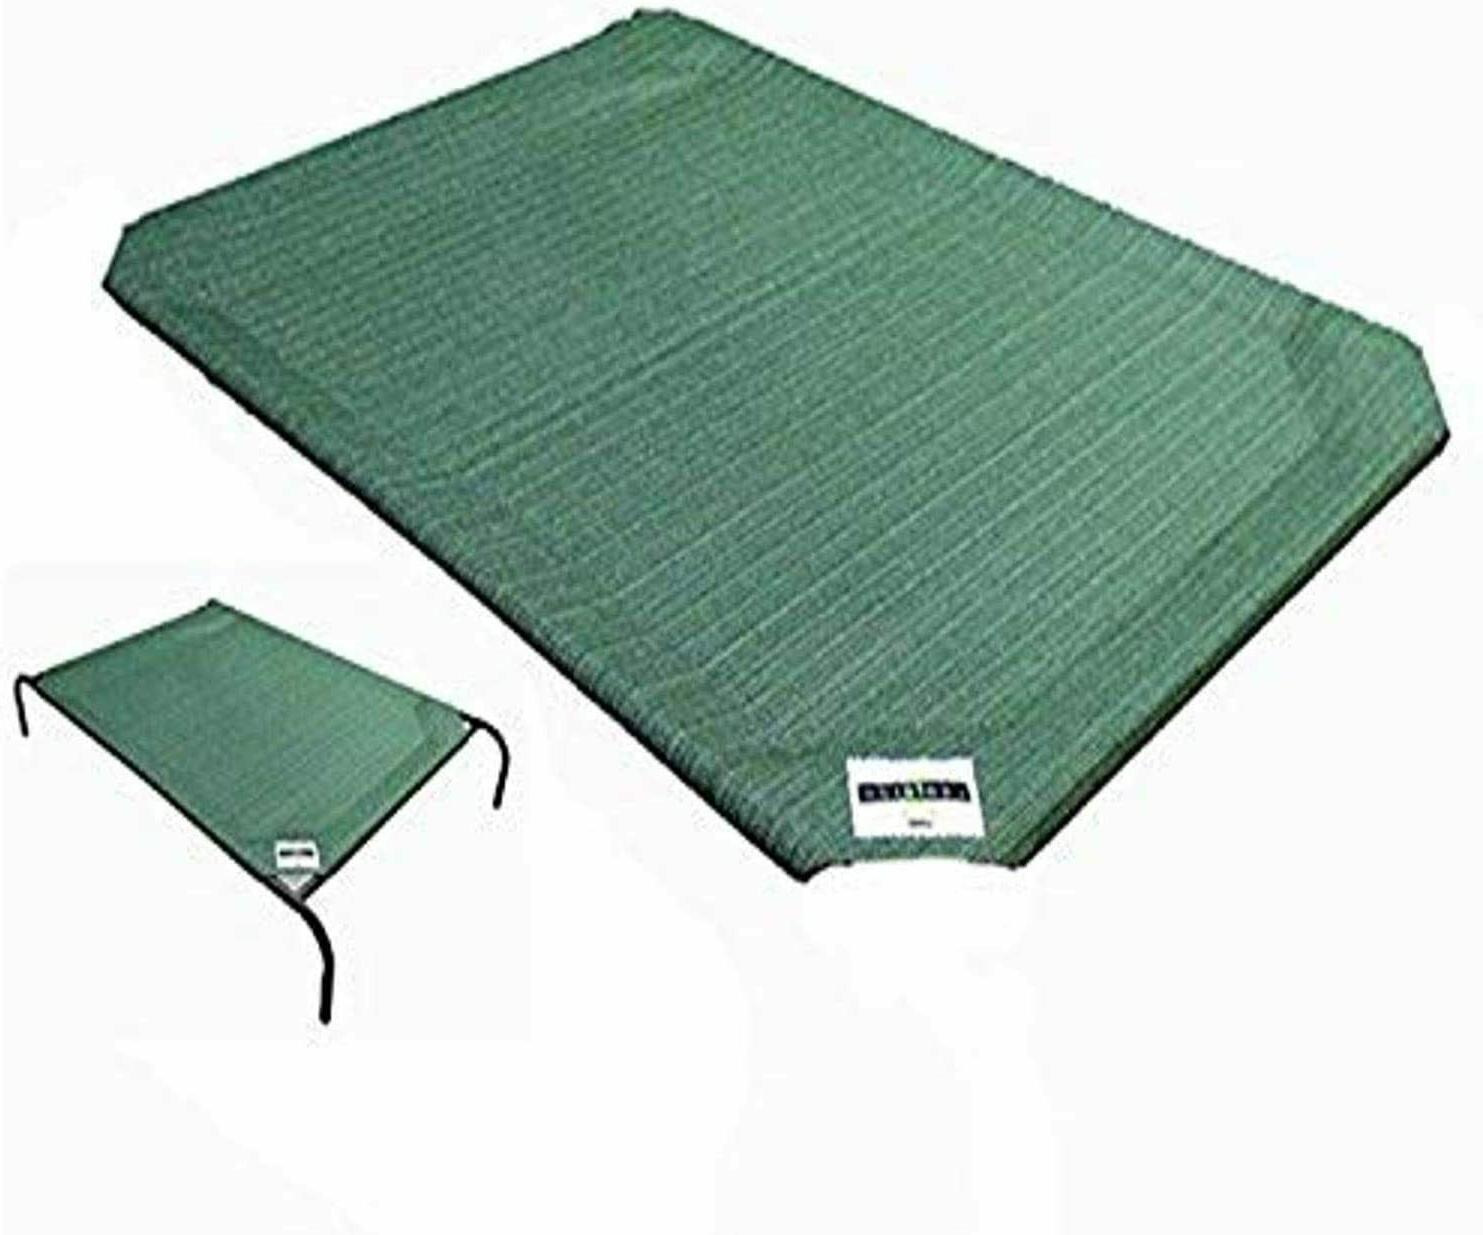 elevated dog bed replacement cover large breathable